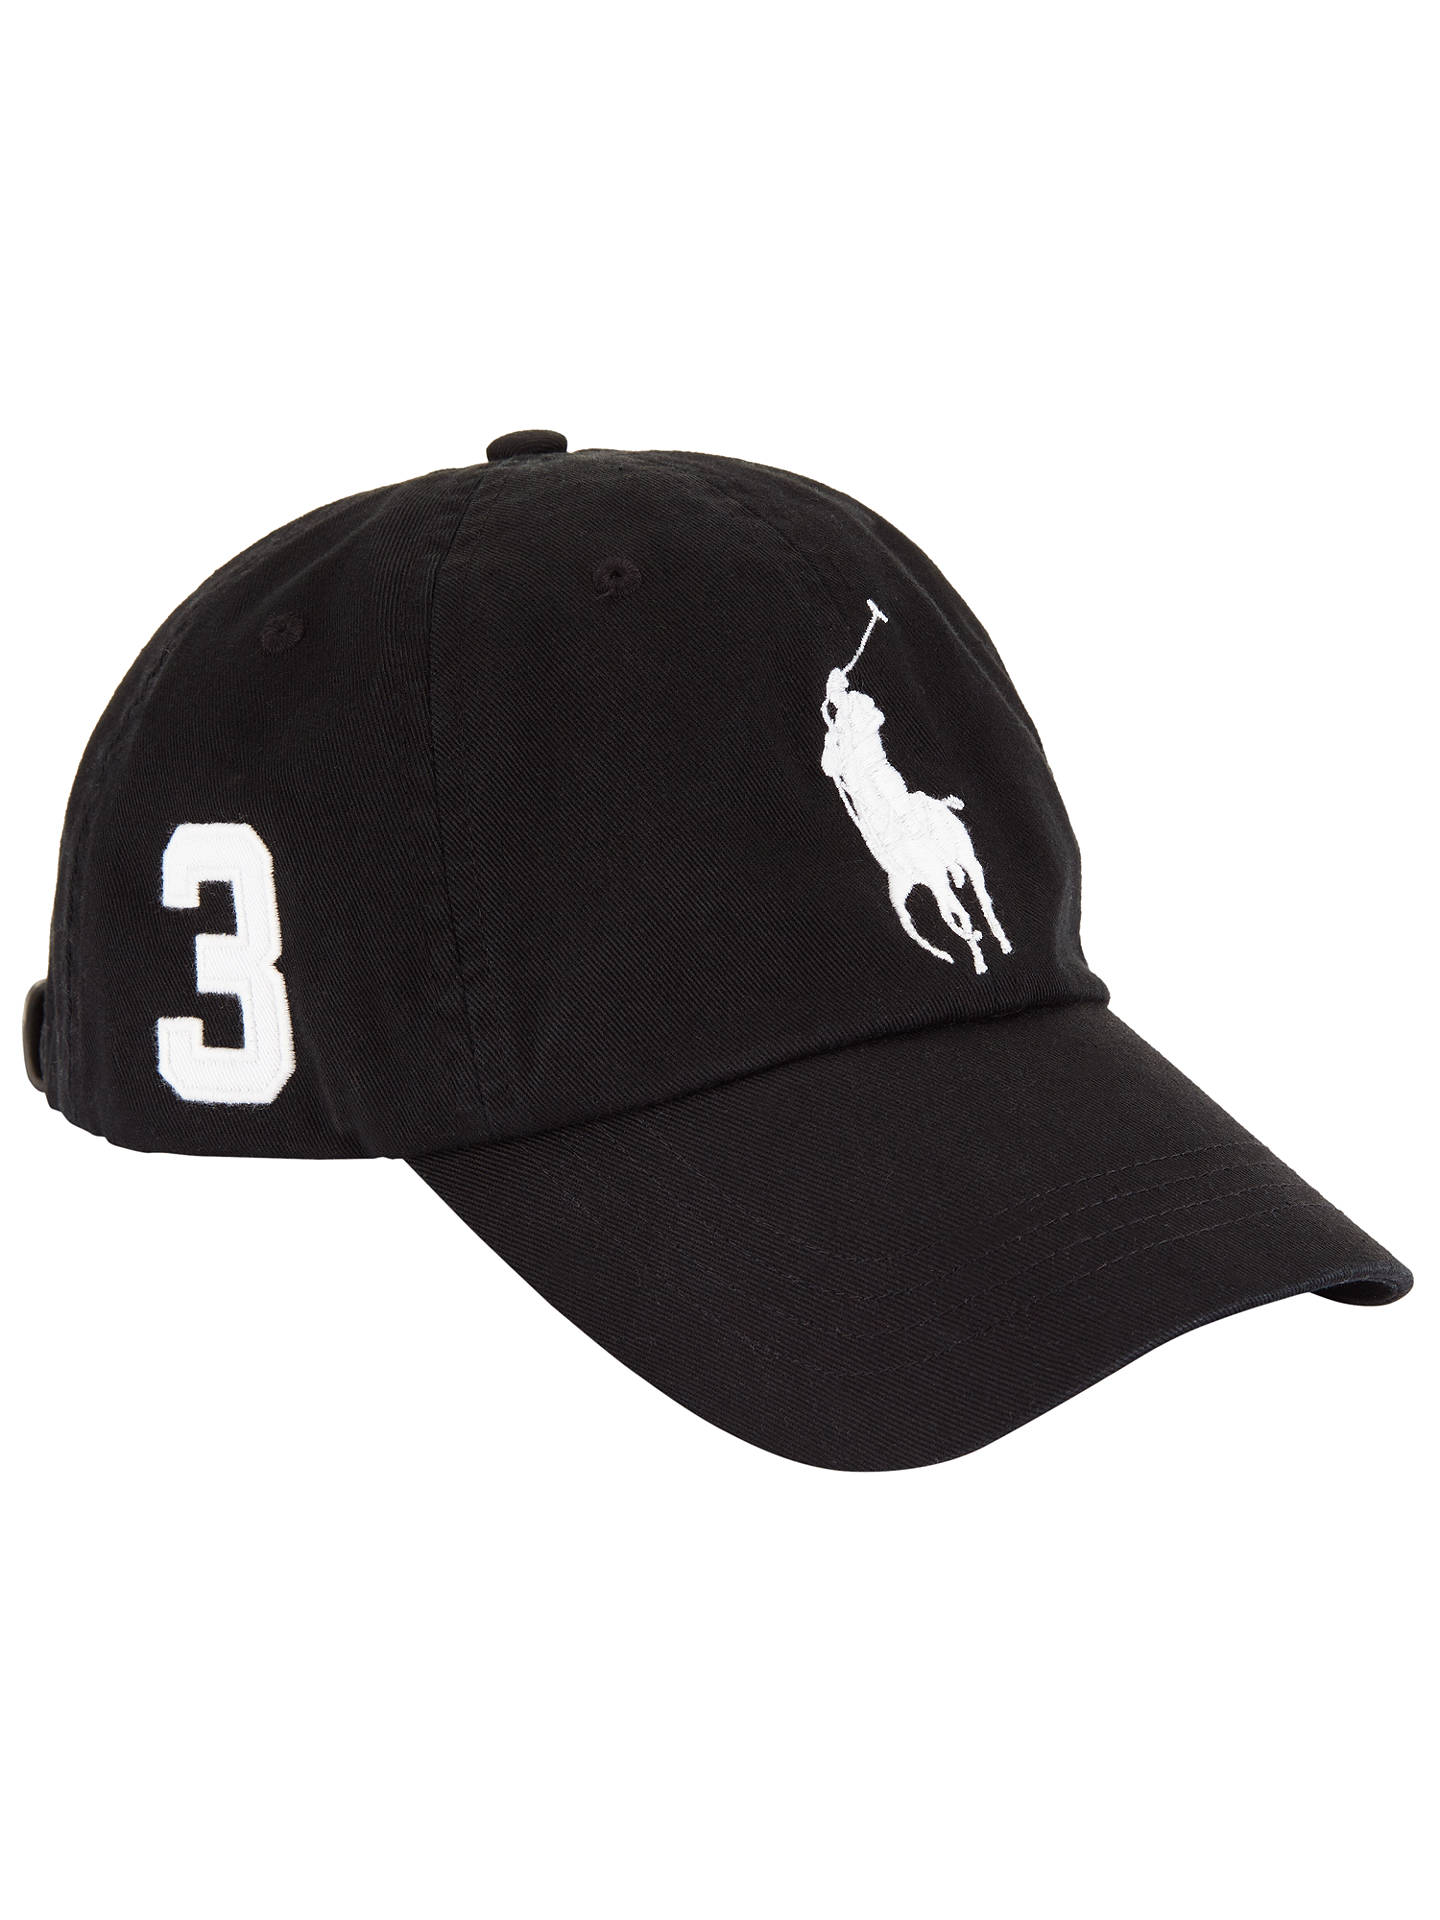 e6ba7371214b2 Buy Polo Ralph Lauren Big Pony Chino Baseball Cap